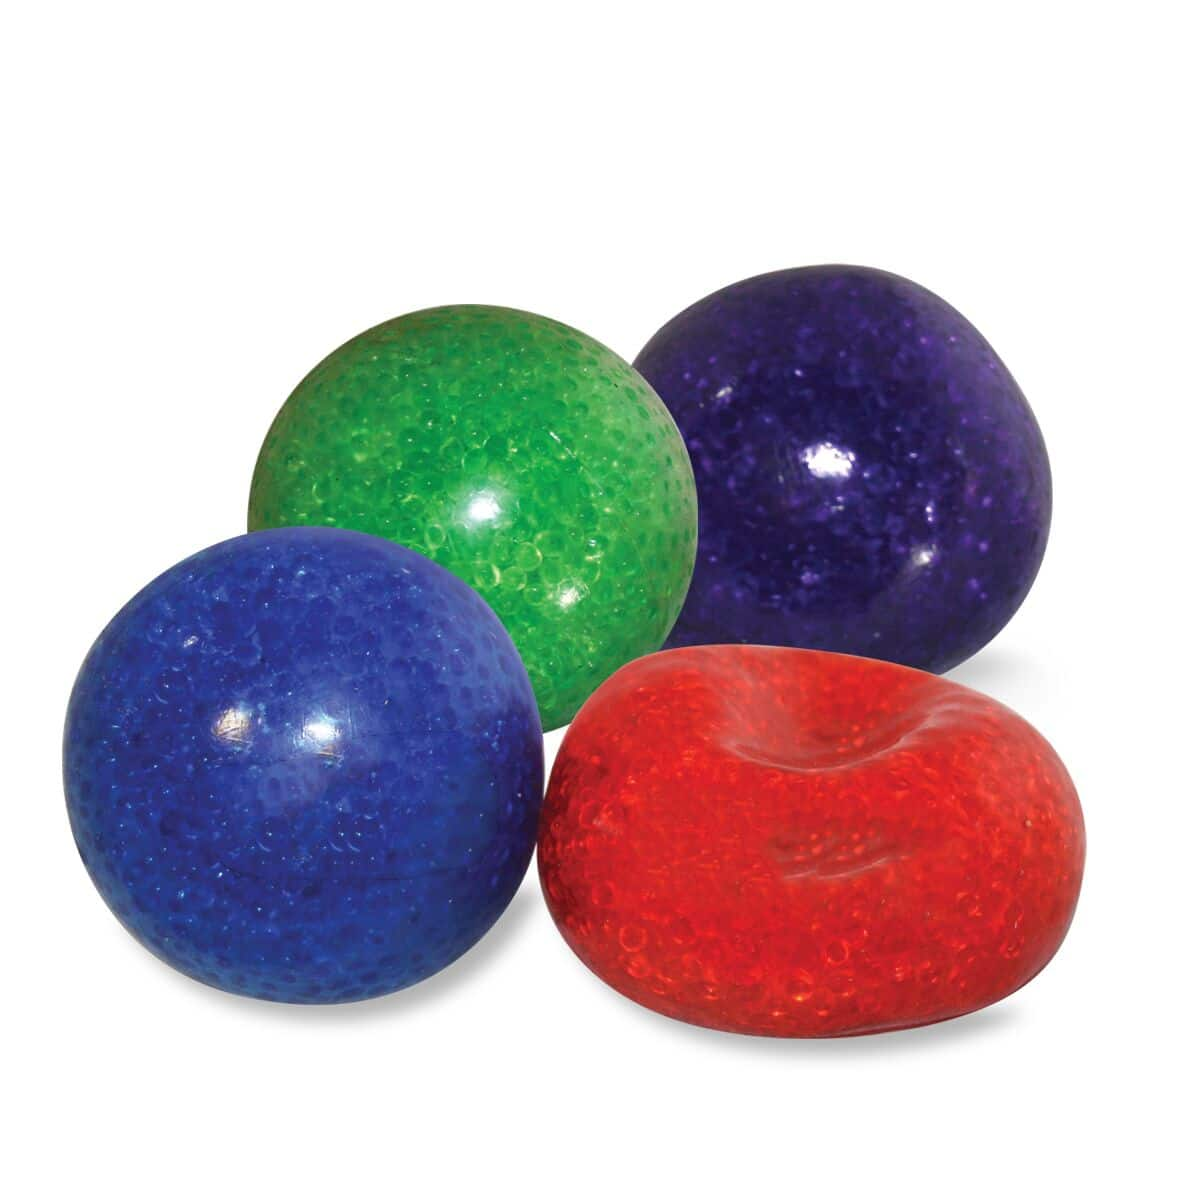 Bead balls reduce stress